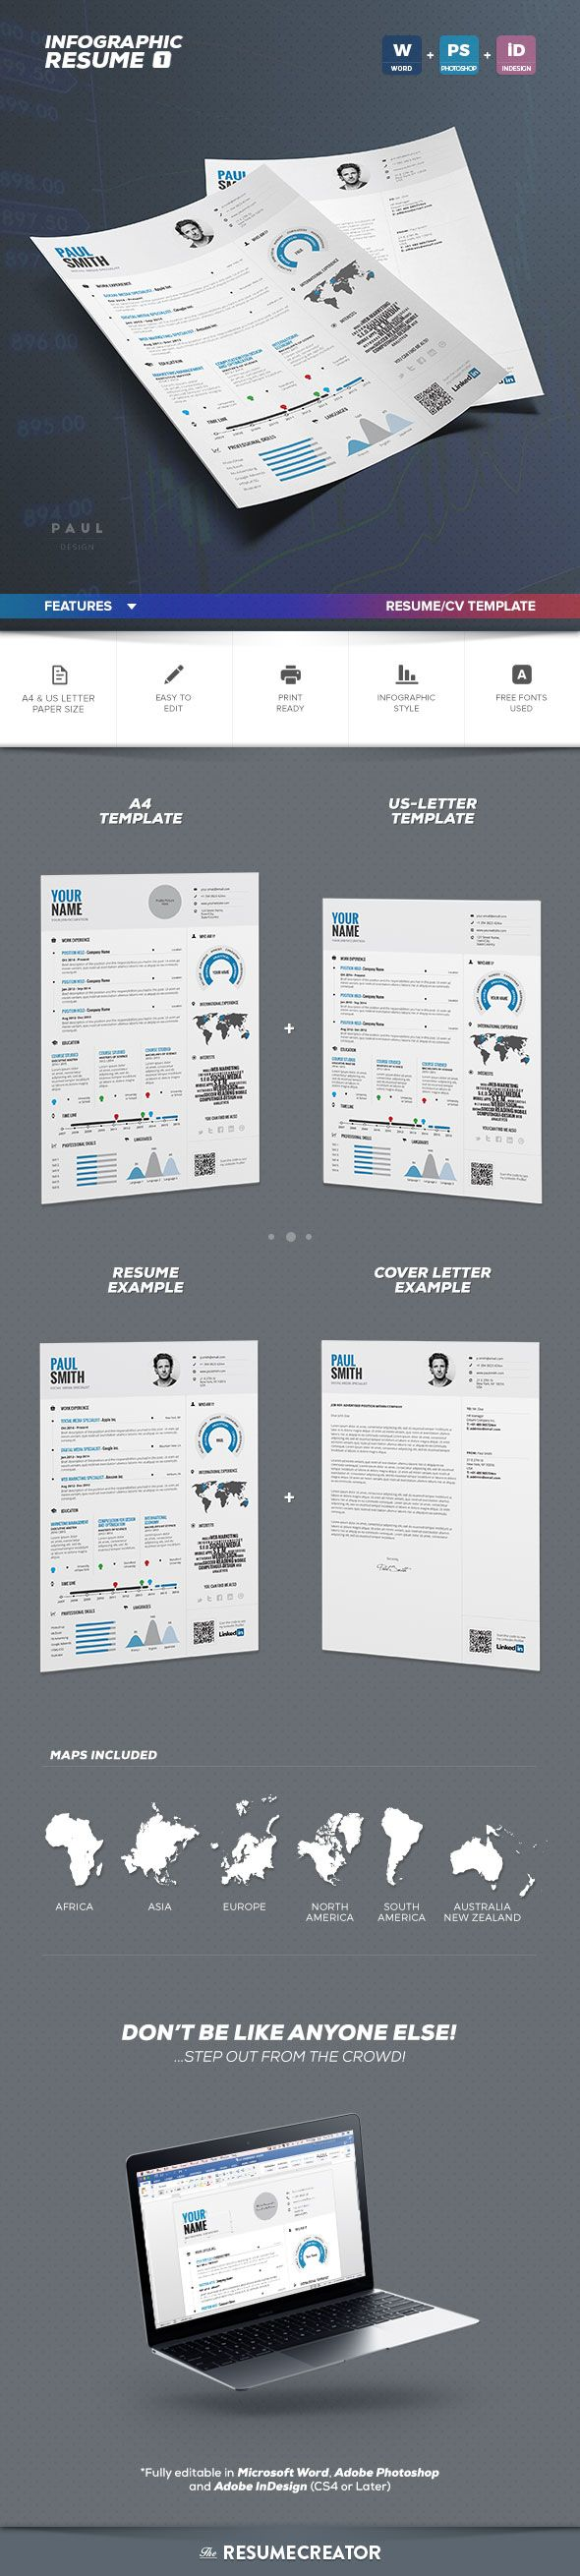 Professionally designed, easy-to-edit template package for the #job #seeker who wants to leave an unforgettable impression. Fast track your job search with a resume as professional, creative, and versatile as you are! Fully customizable in Adobe #Photoshop, #Adobe #InDesign and in #Microsoft Word. Unlimited edits for use again and again!  #resume #cv #lebenslauf